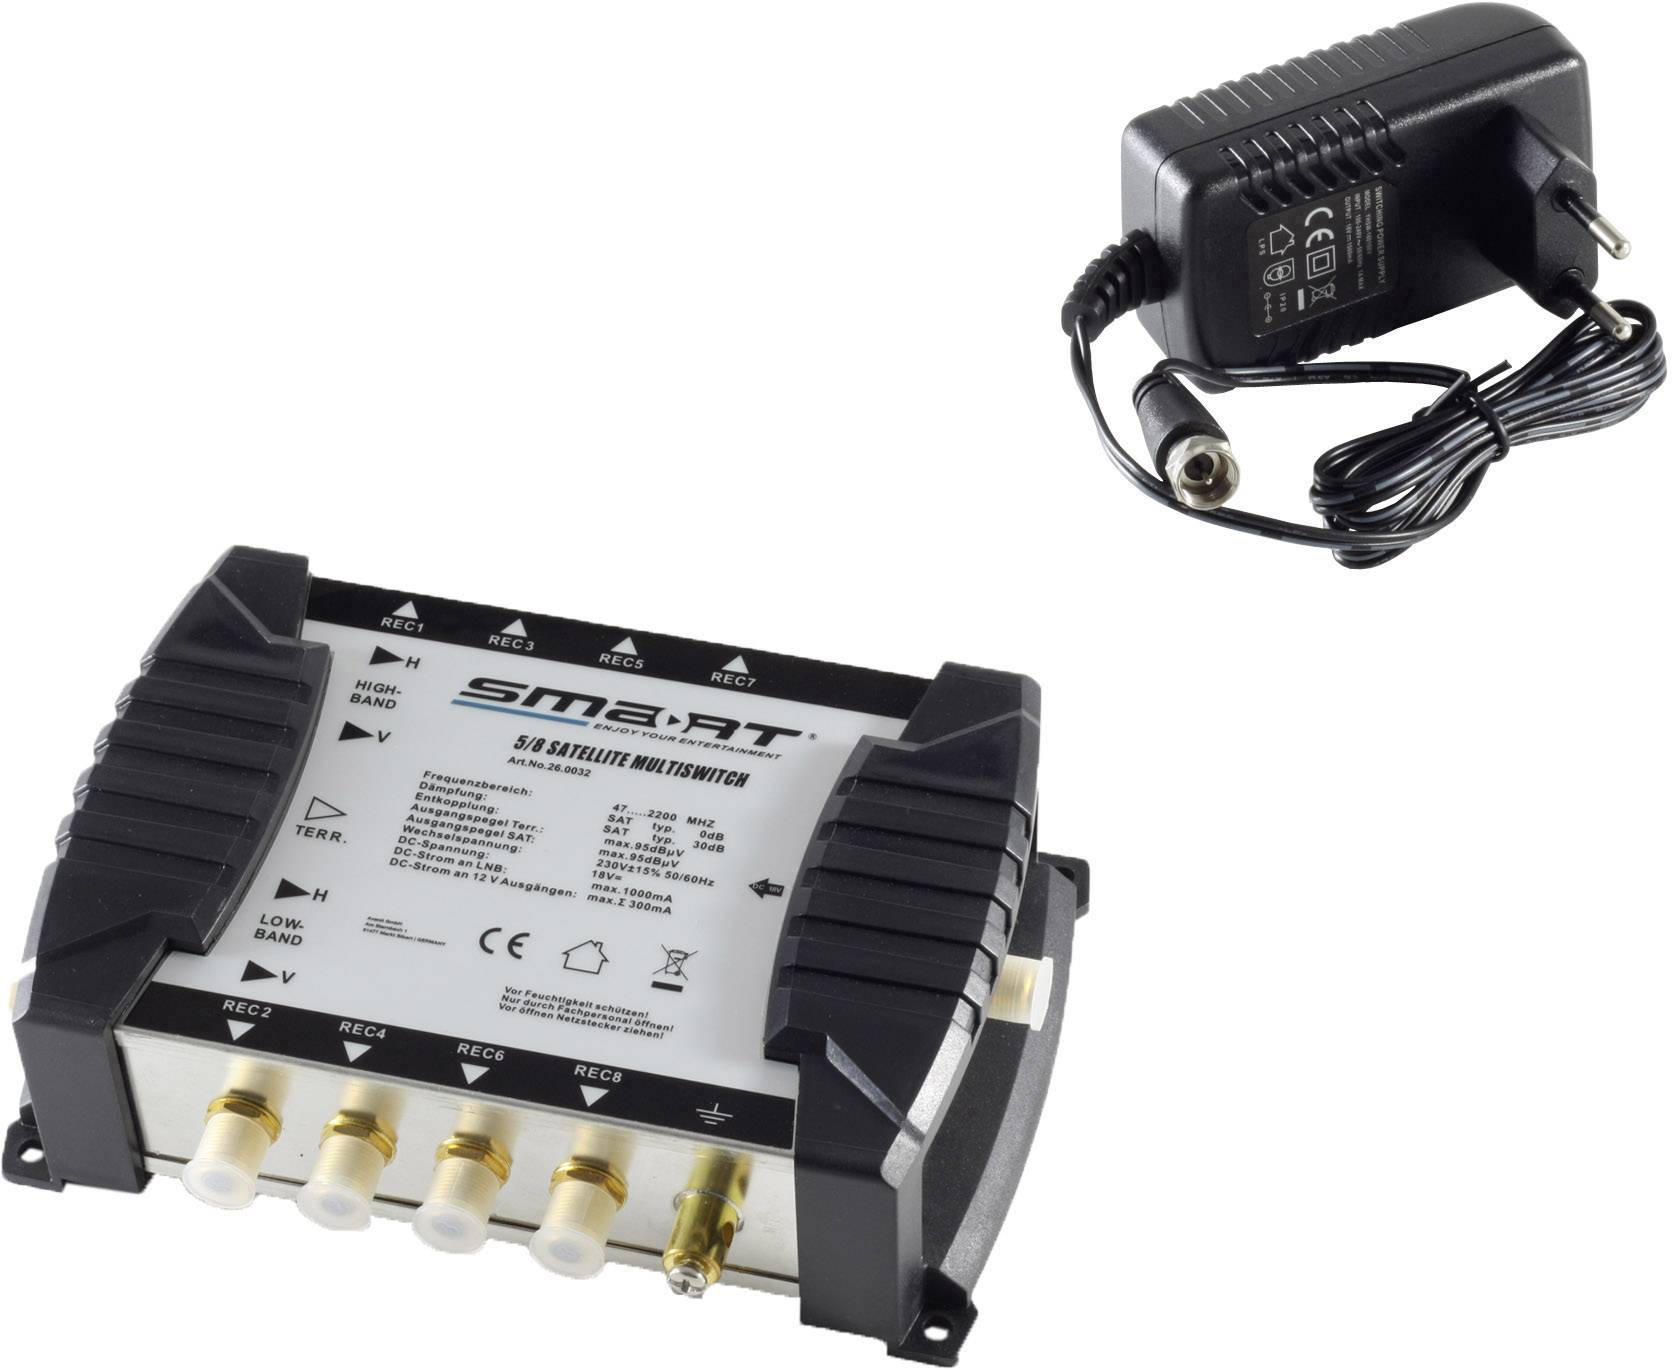 Smart MSE58NT SAT multiswitch